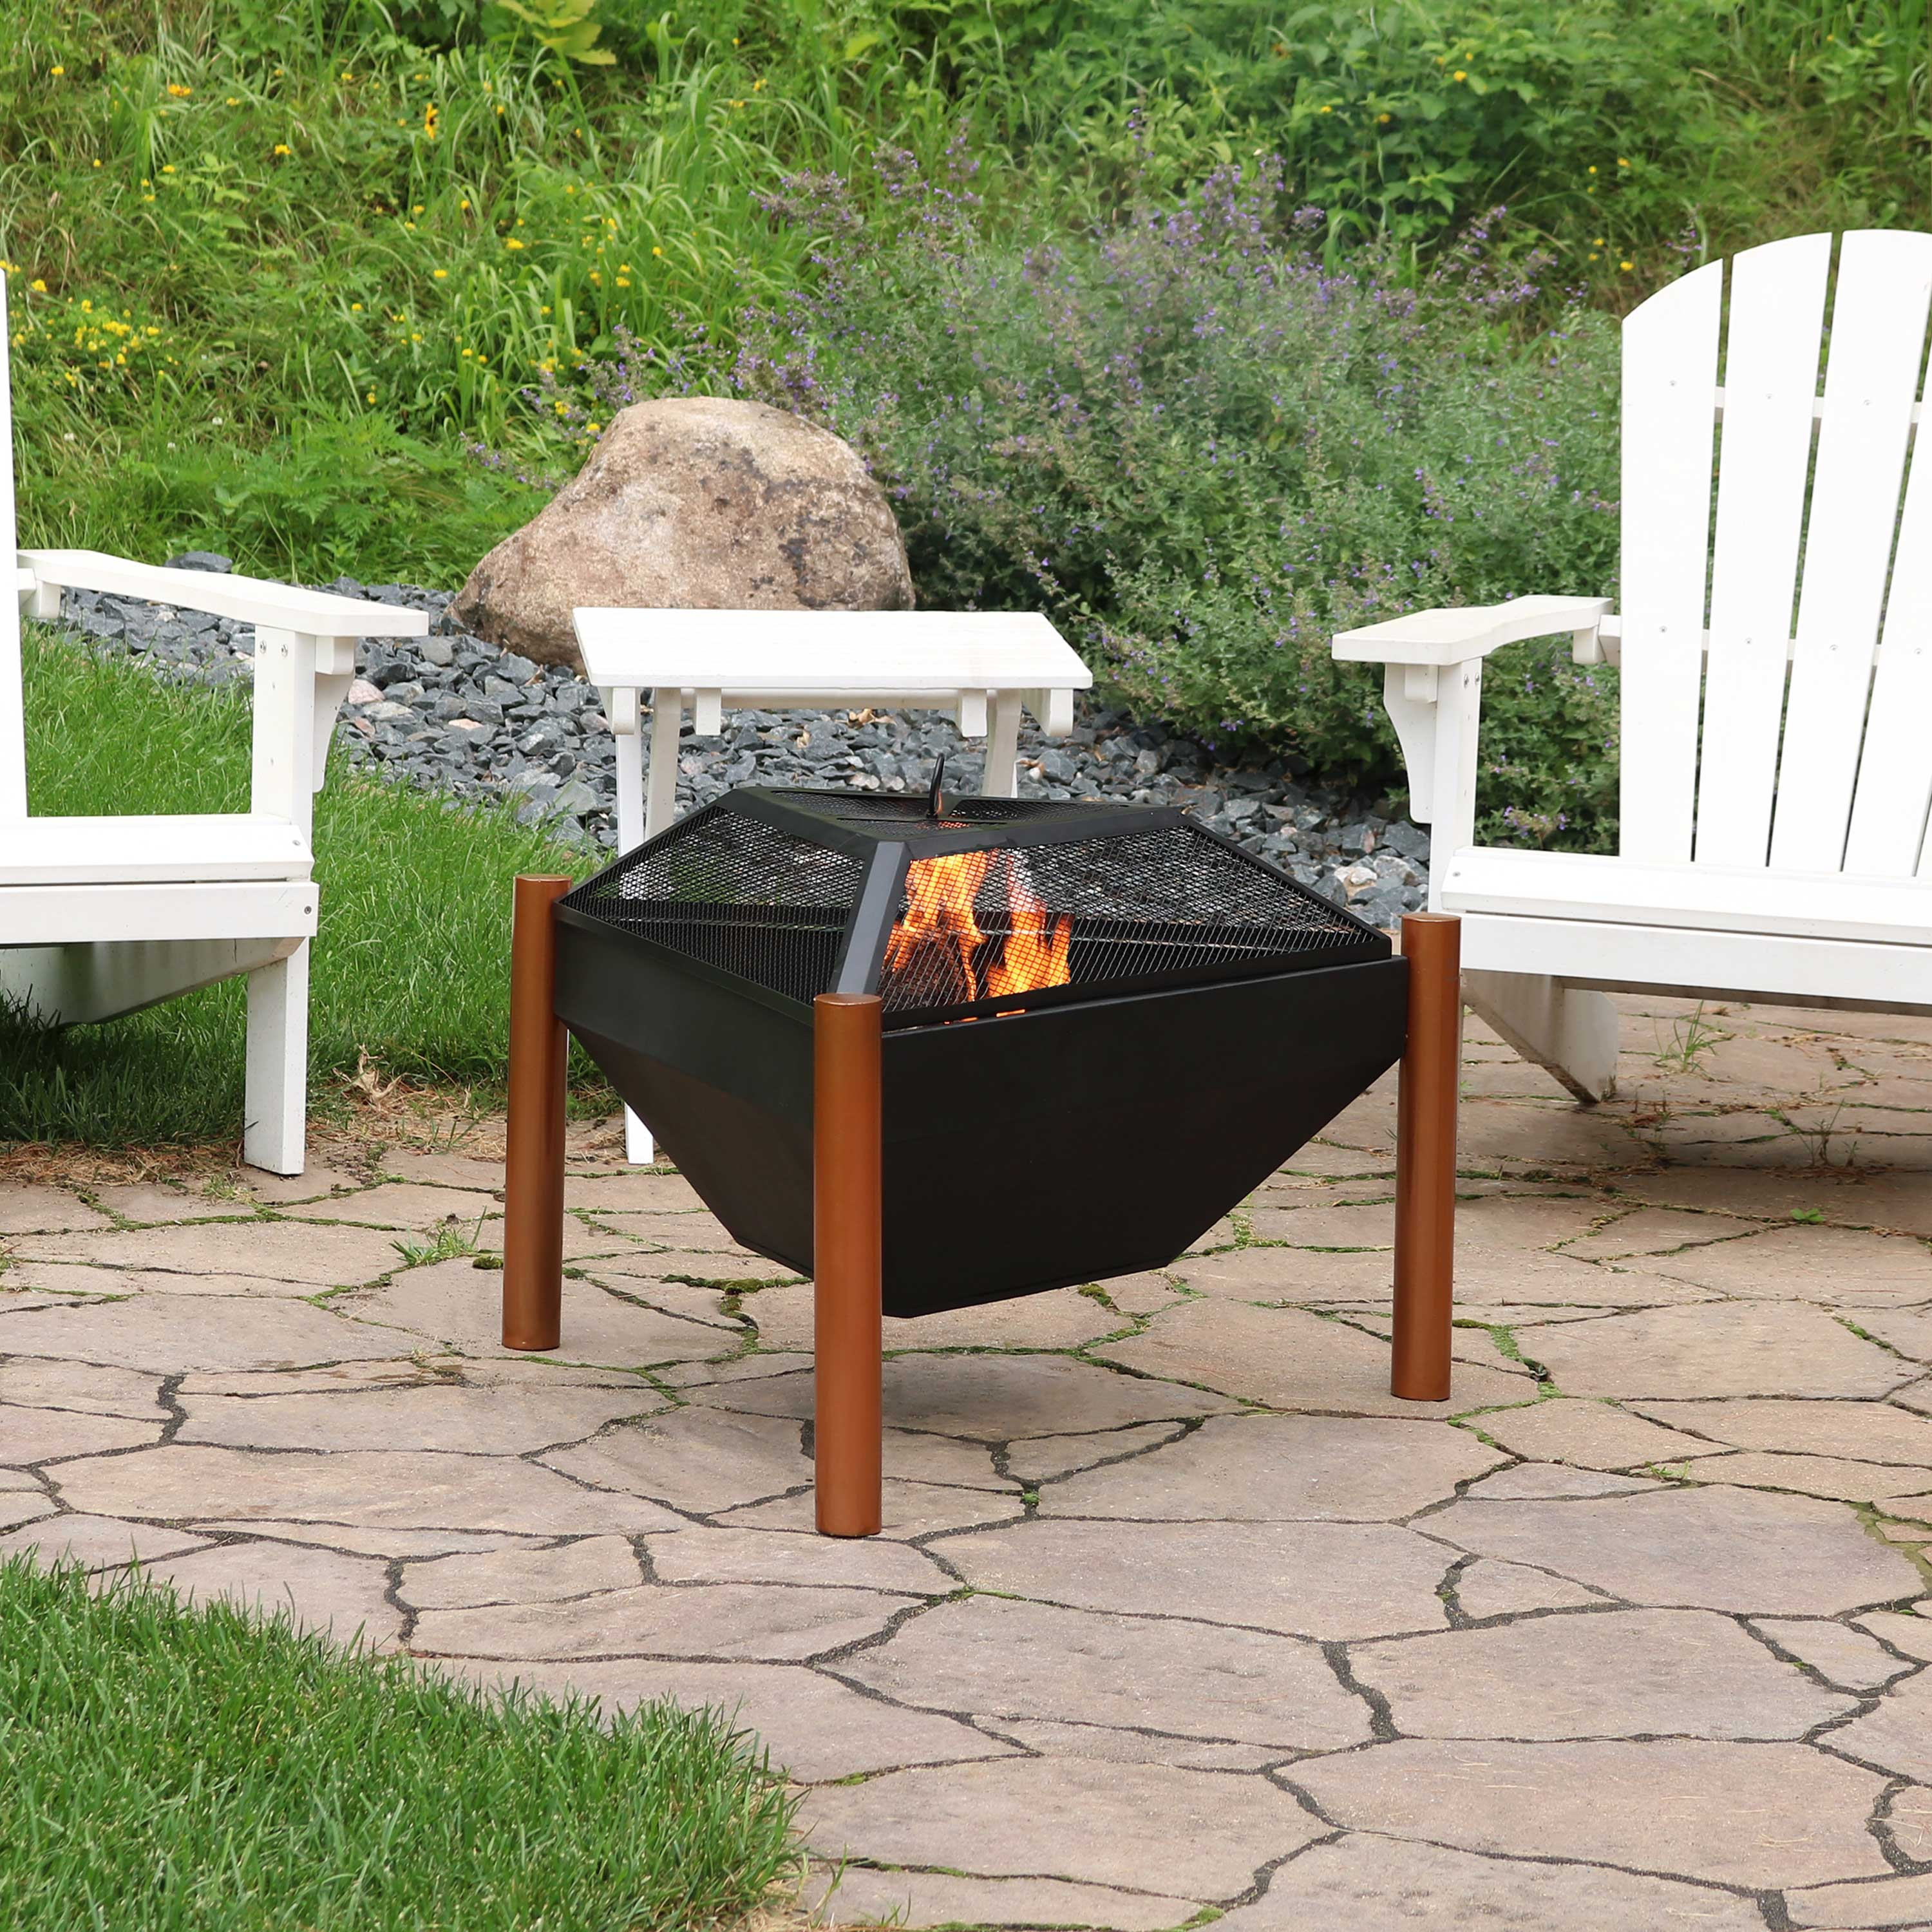 Sunnydaze Steel Outdoor Triangle Fire Pit and Side Table - 31-Inch